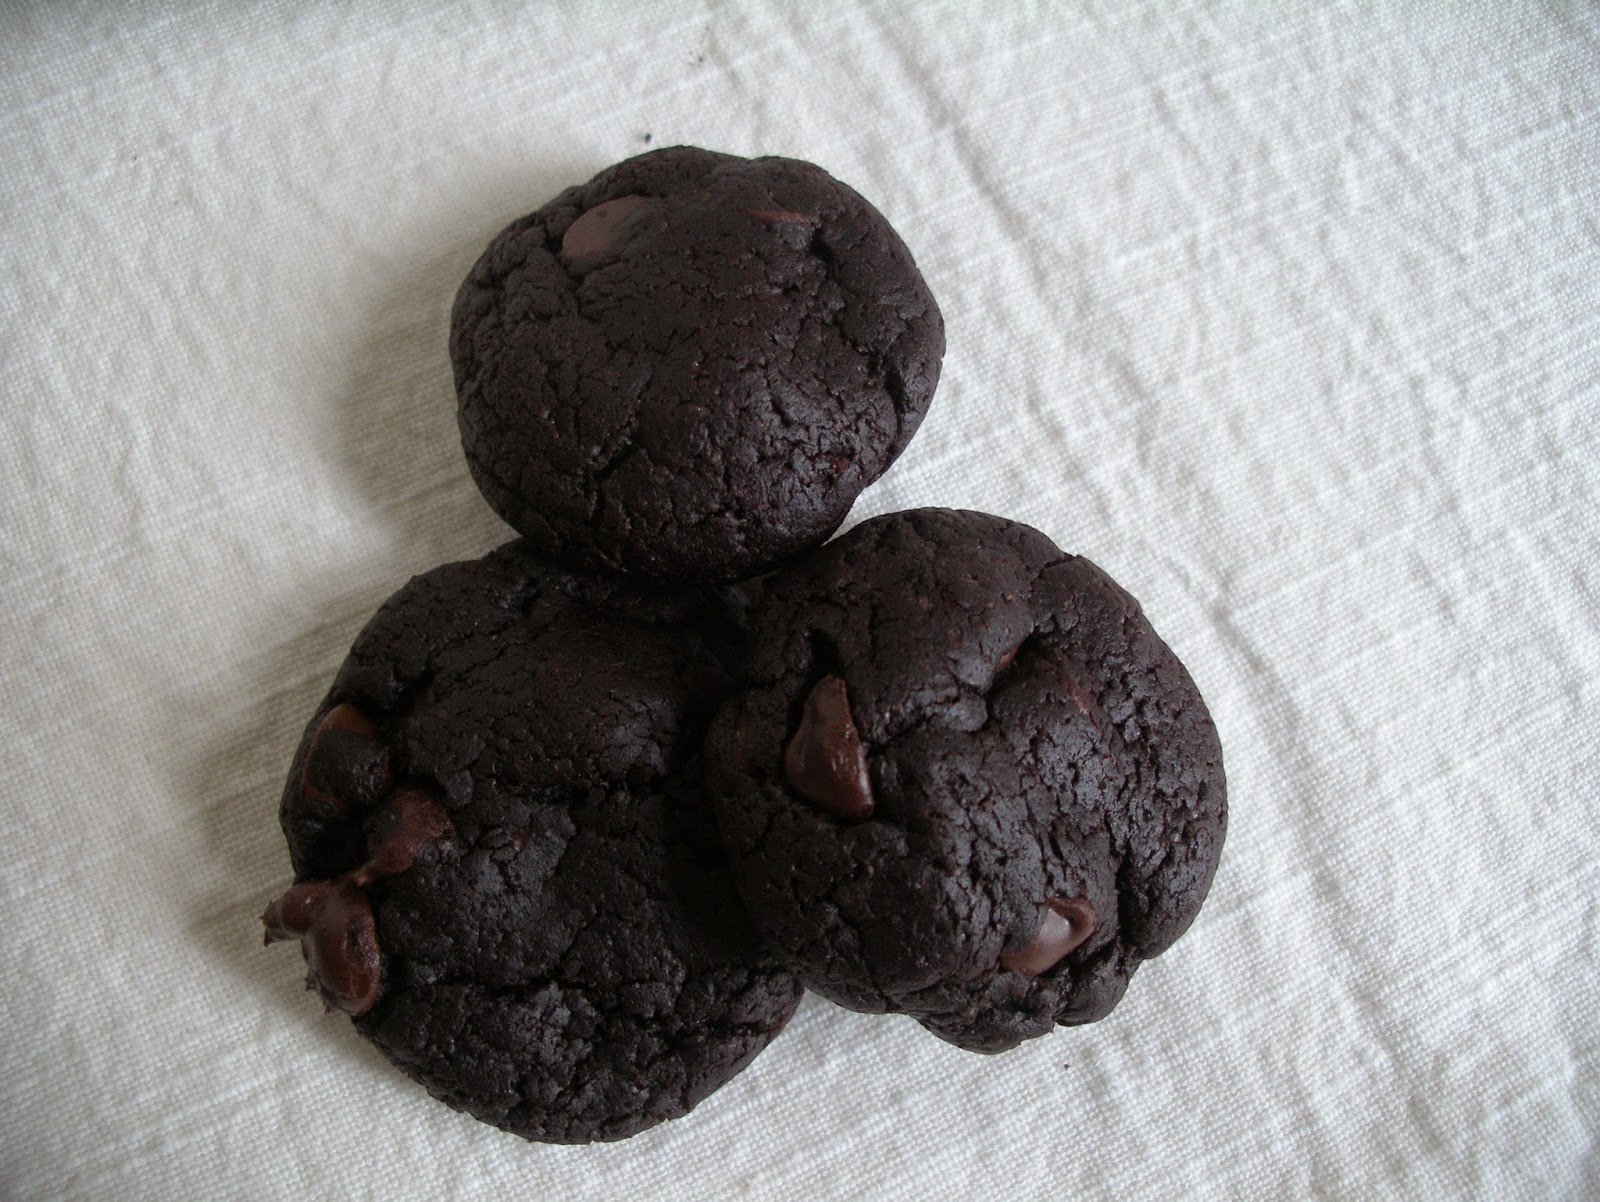 Chewy cocoa cookies with chocolate chips